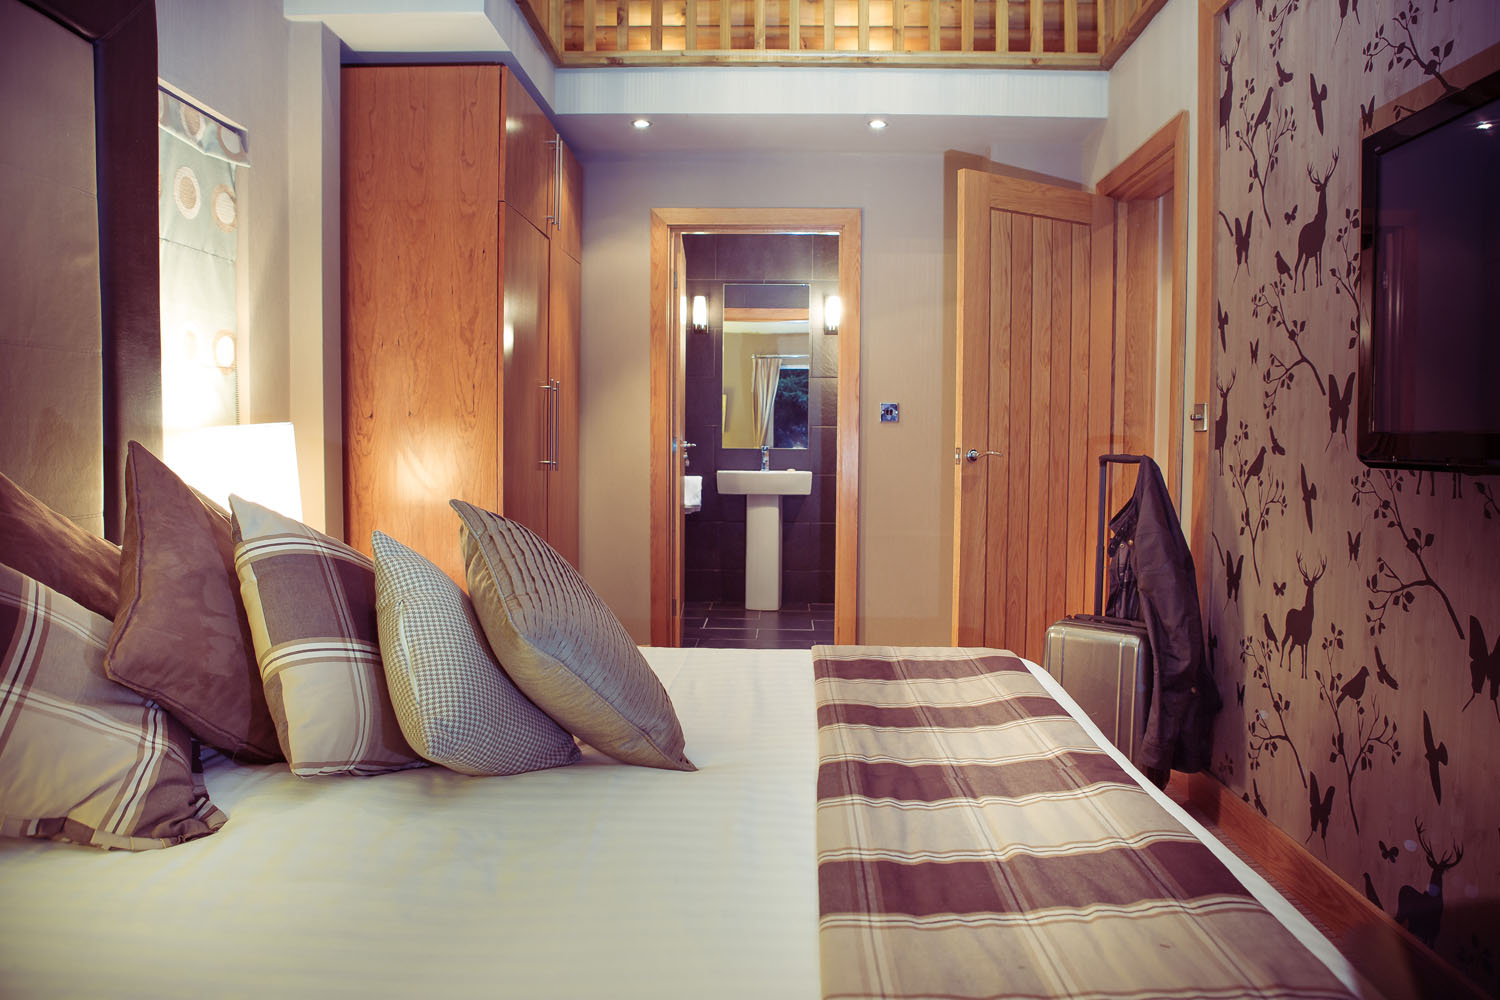 Boutique luxury hotels in scottish highlands muckrach for Boutique hotel